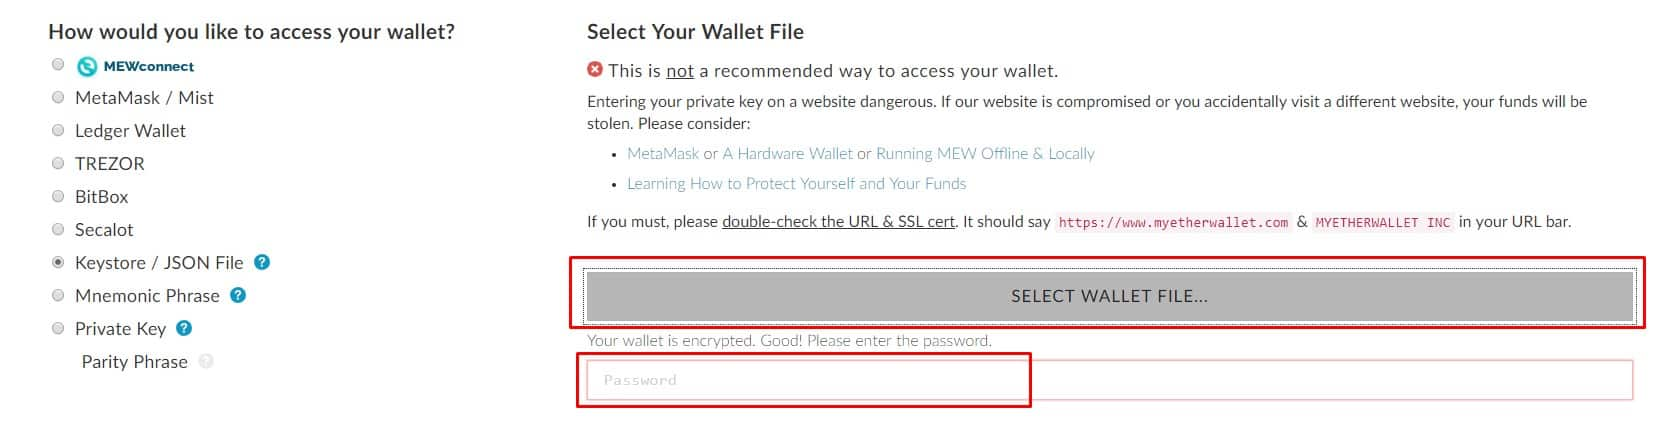 Select a wallet file